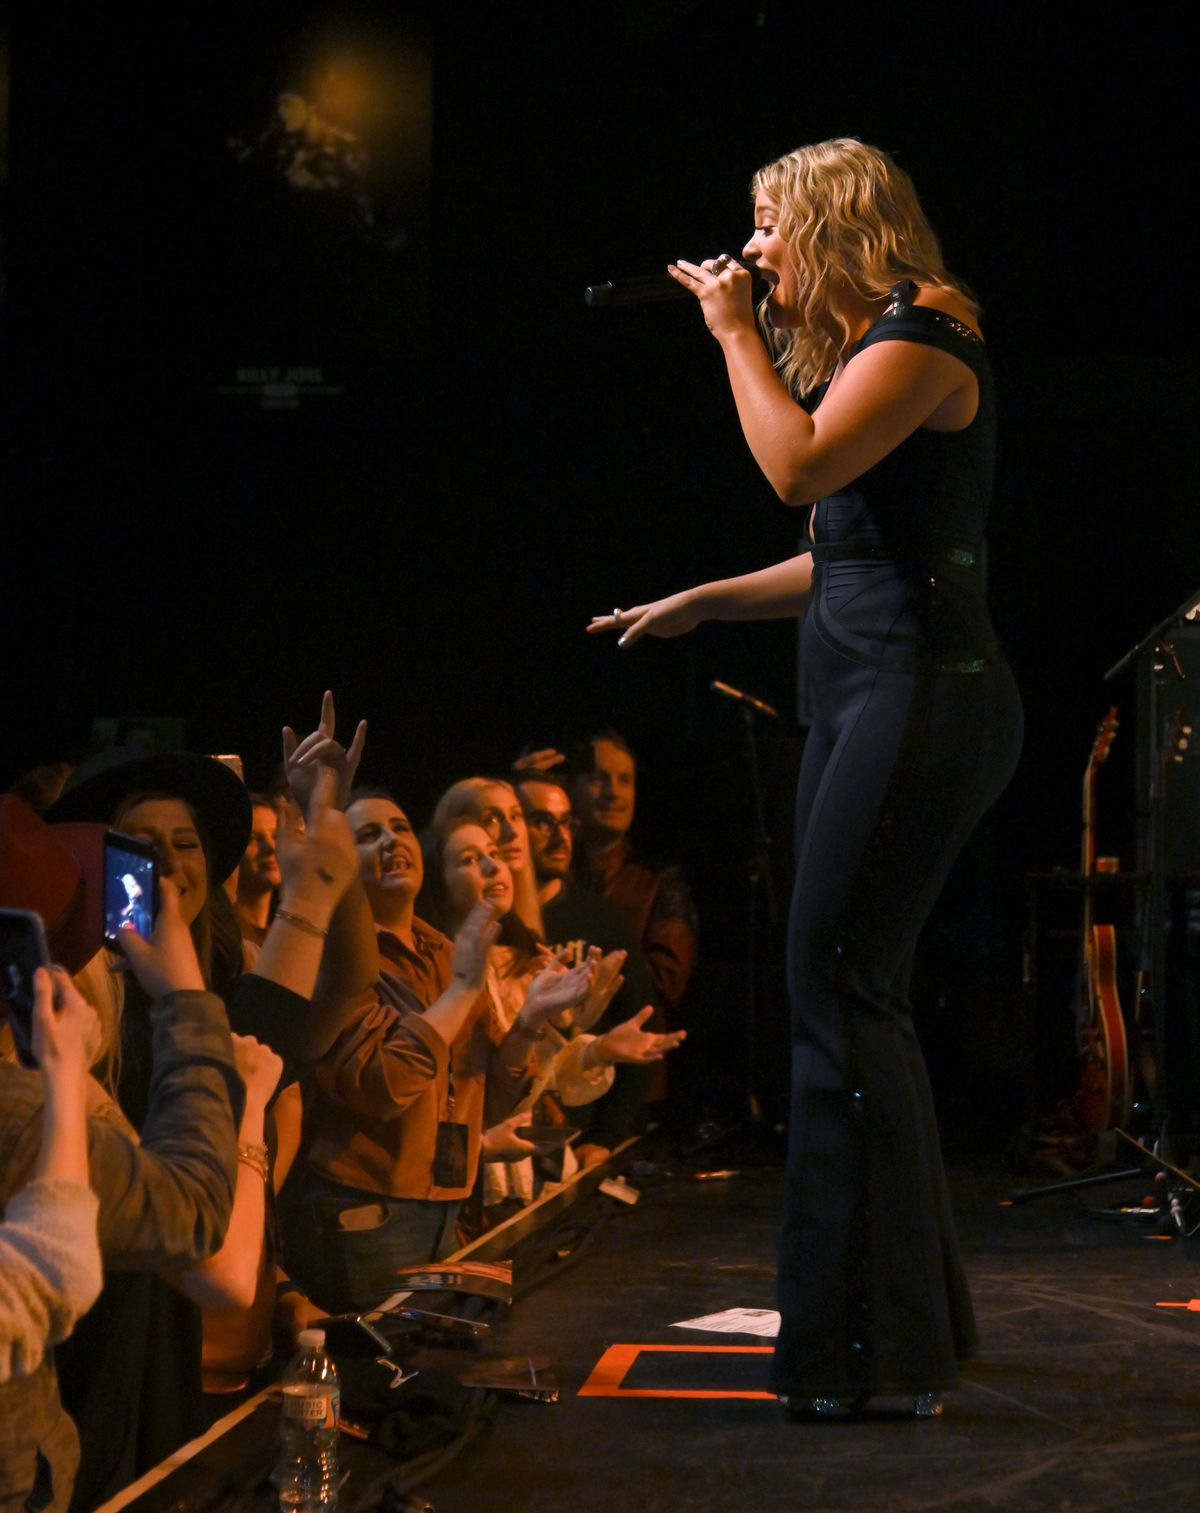 Country artist Lauren Alaina performs at Exit In on January 15, 2020 in Nashville, Tennessee.